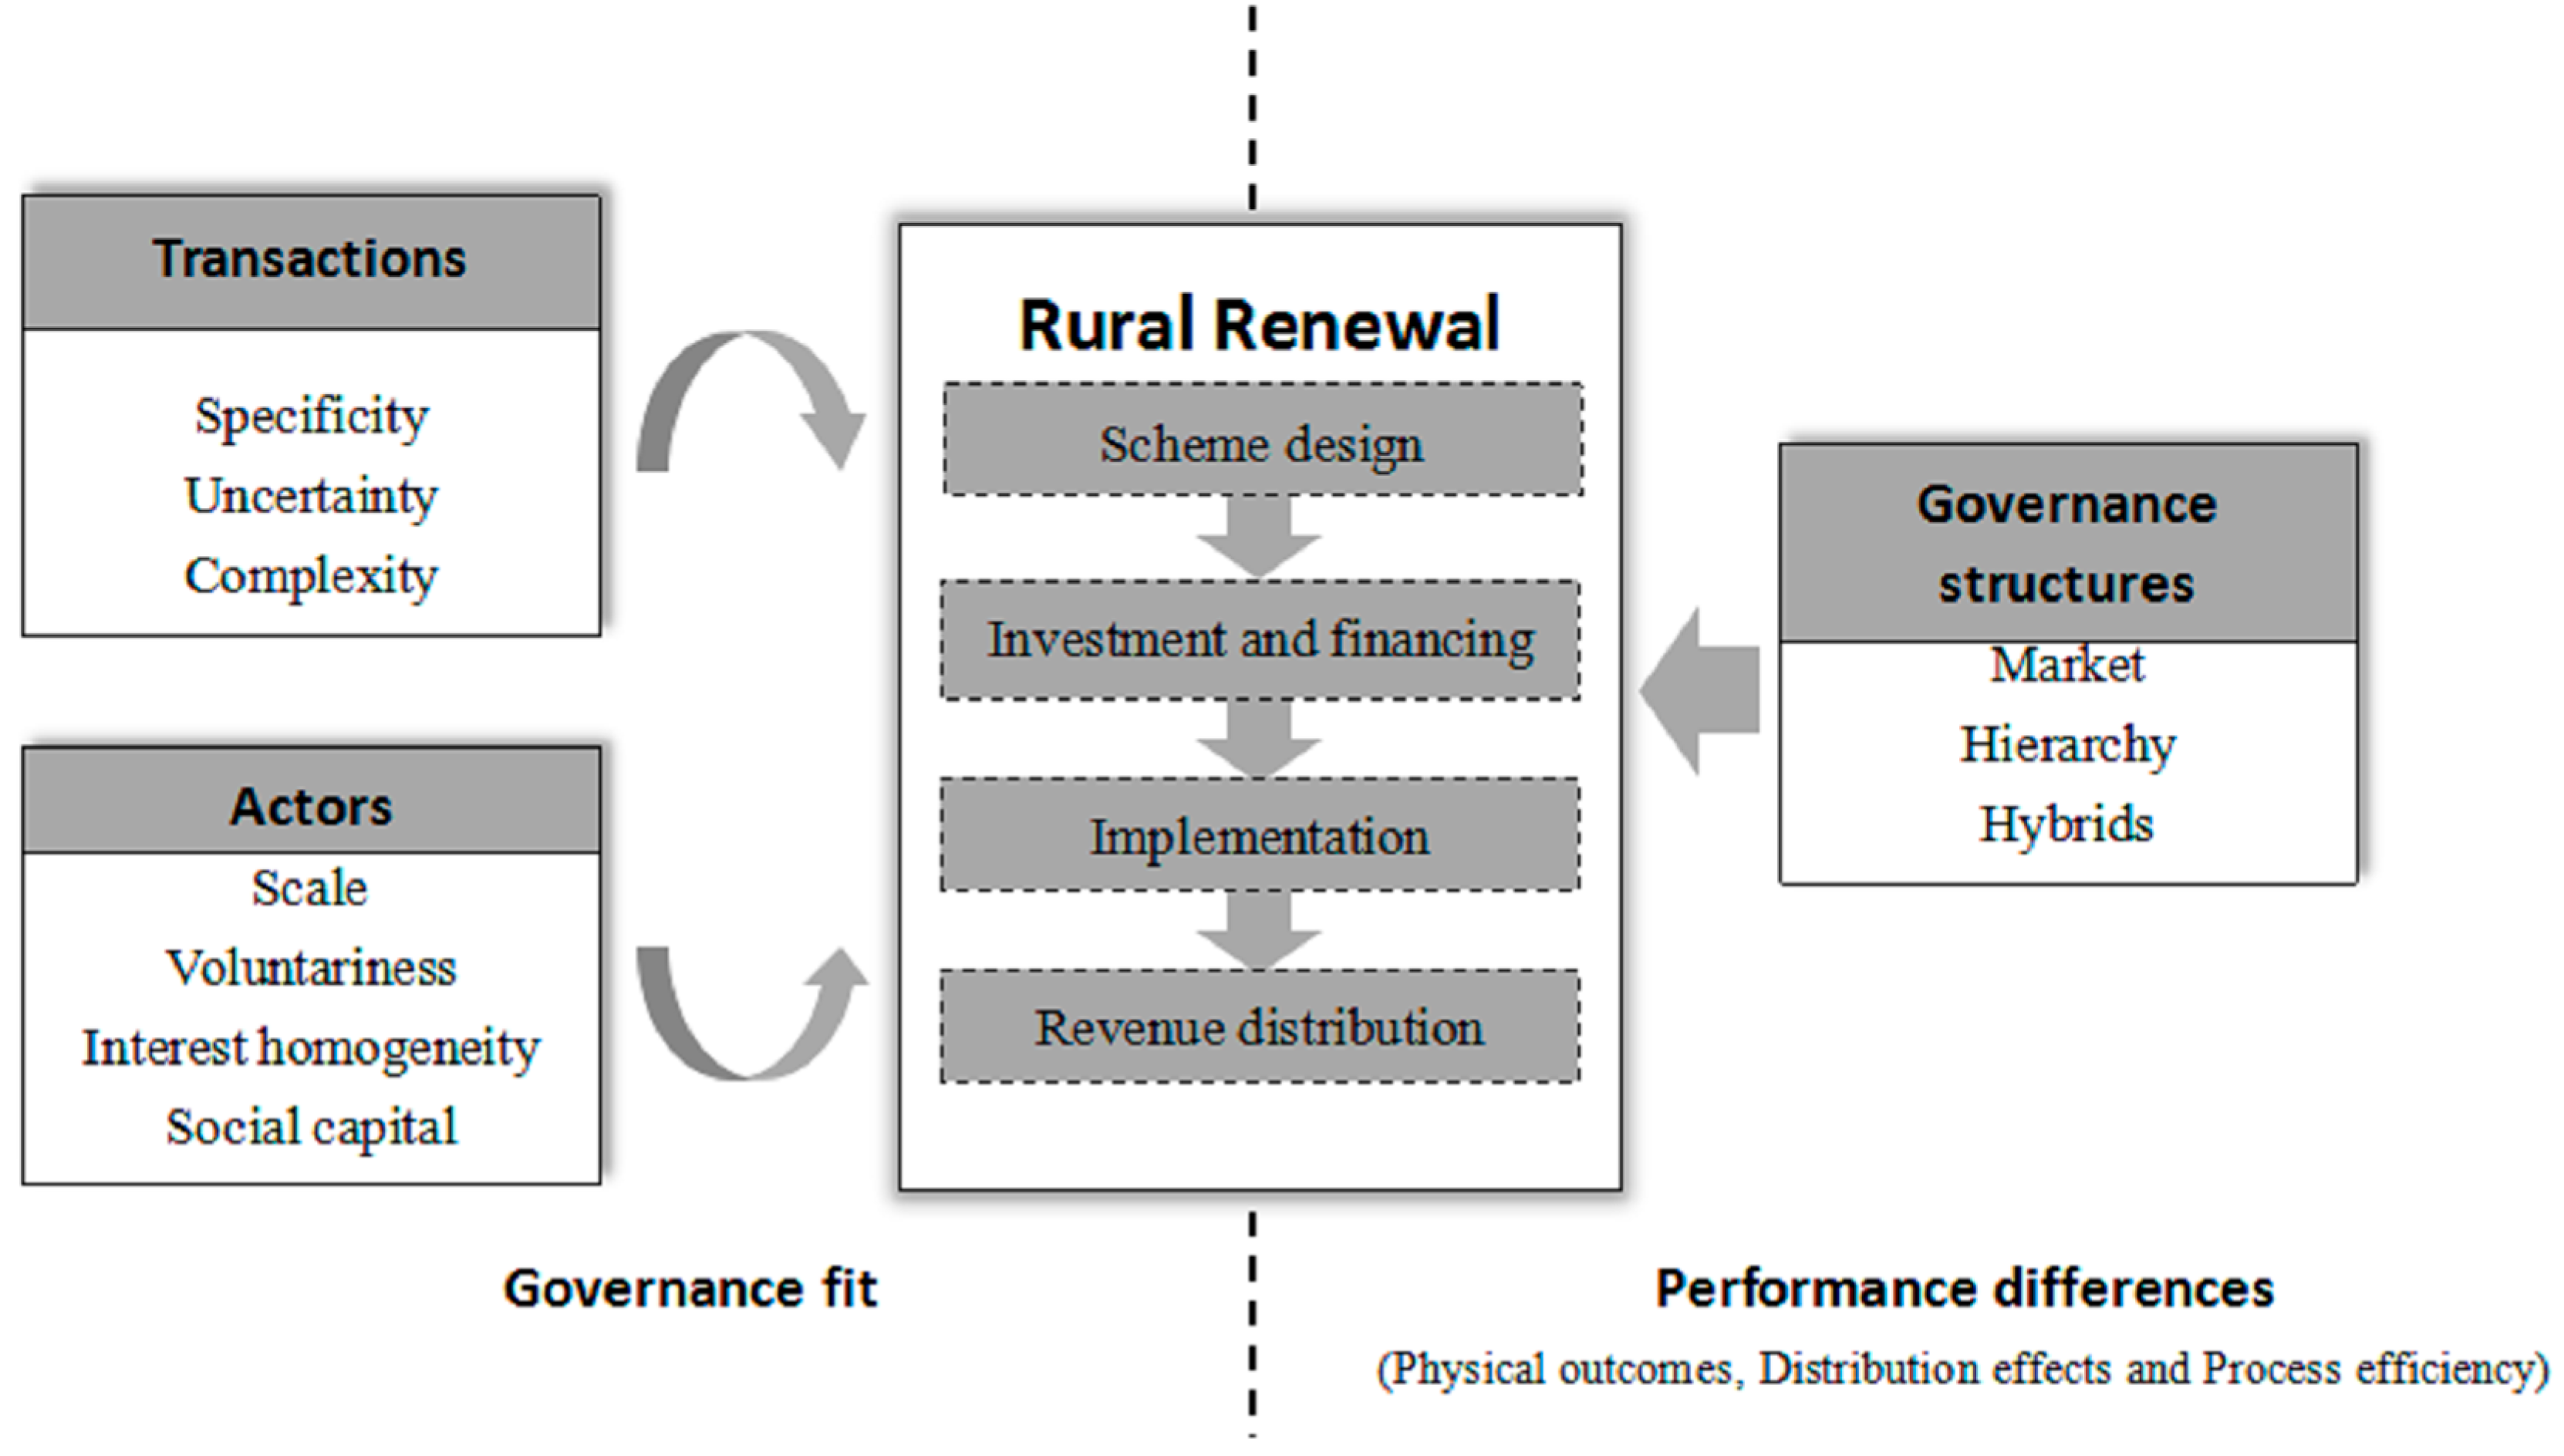 the market hybrid and hierarchy governance structures economics essay Hybrid combinations can perspective also holds that trust as well as economic risk determine governance structures market nor hierarchy:.